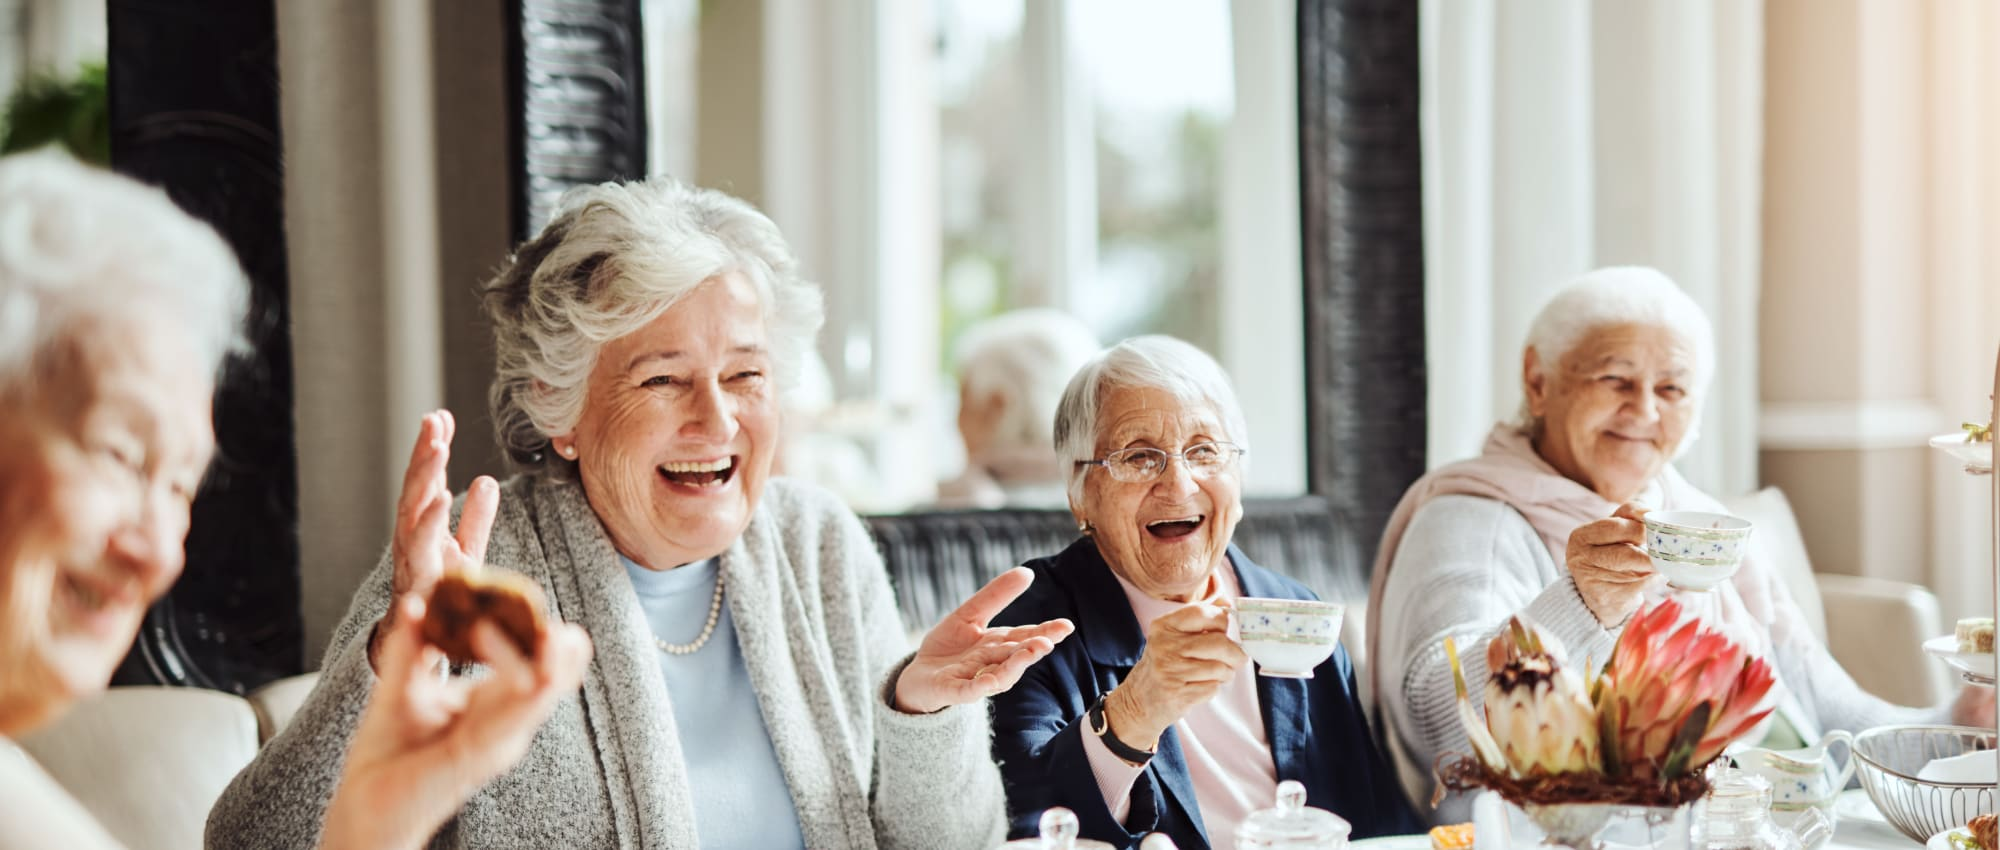 Services and amenities at Lawton Senior Living in Lawton, Iowa.